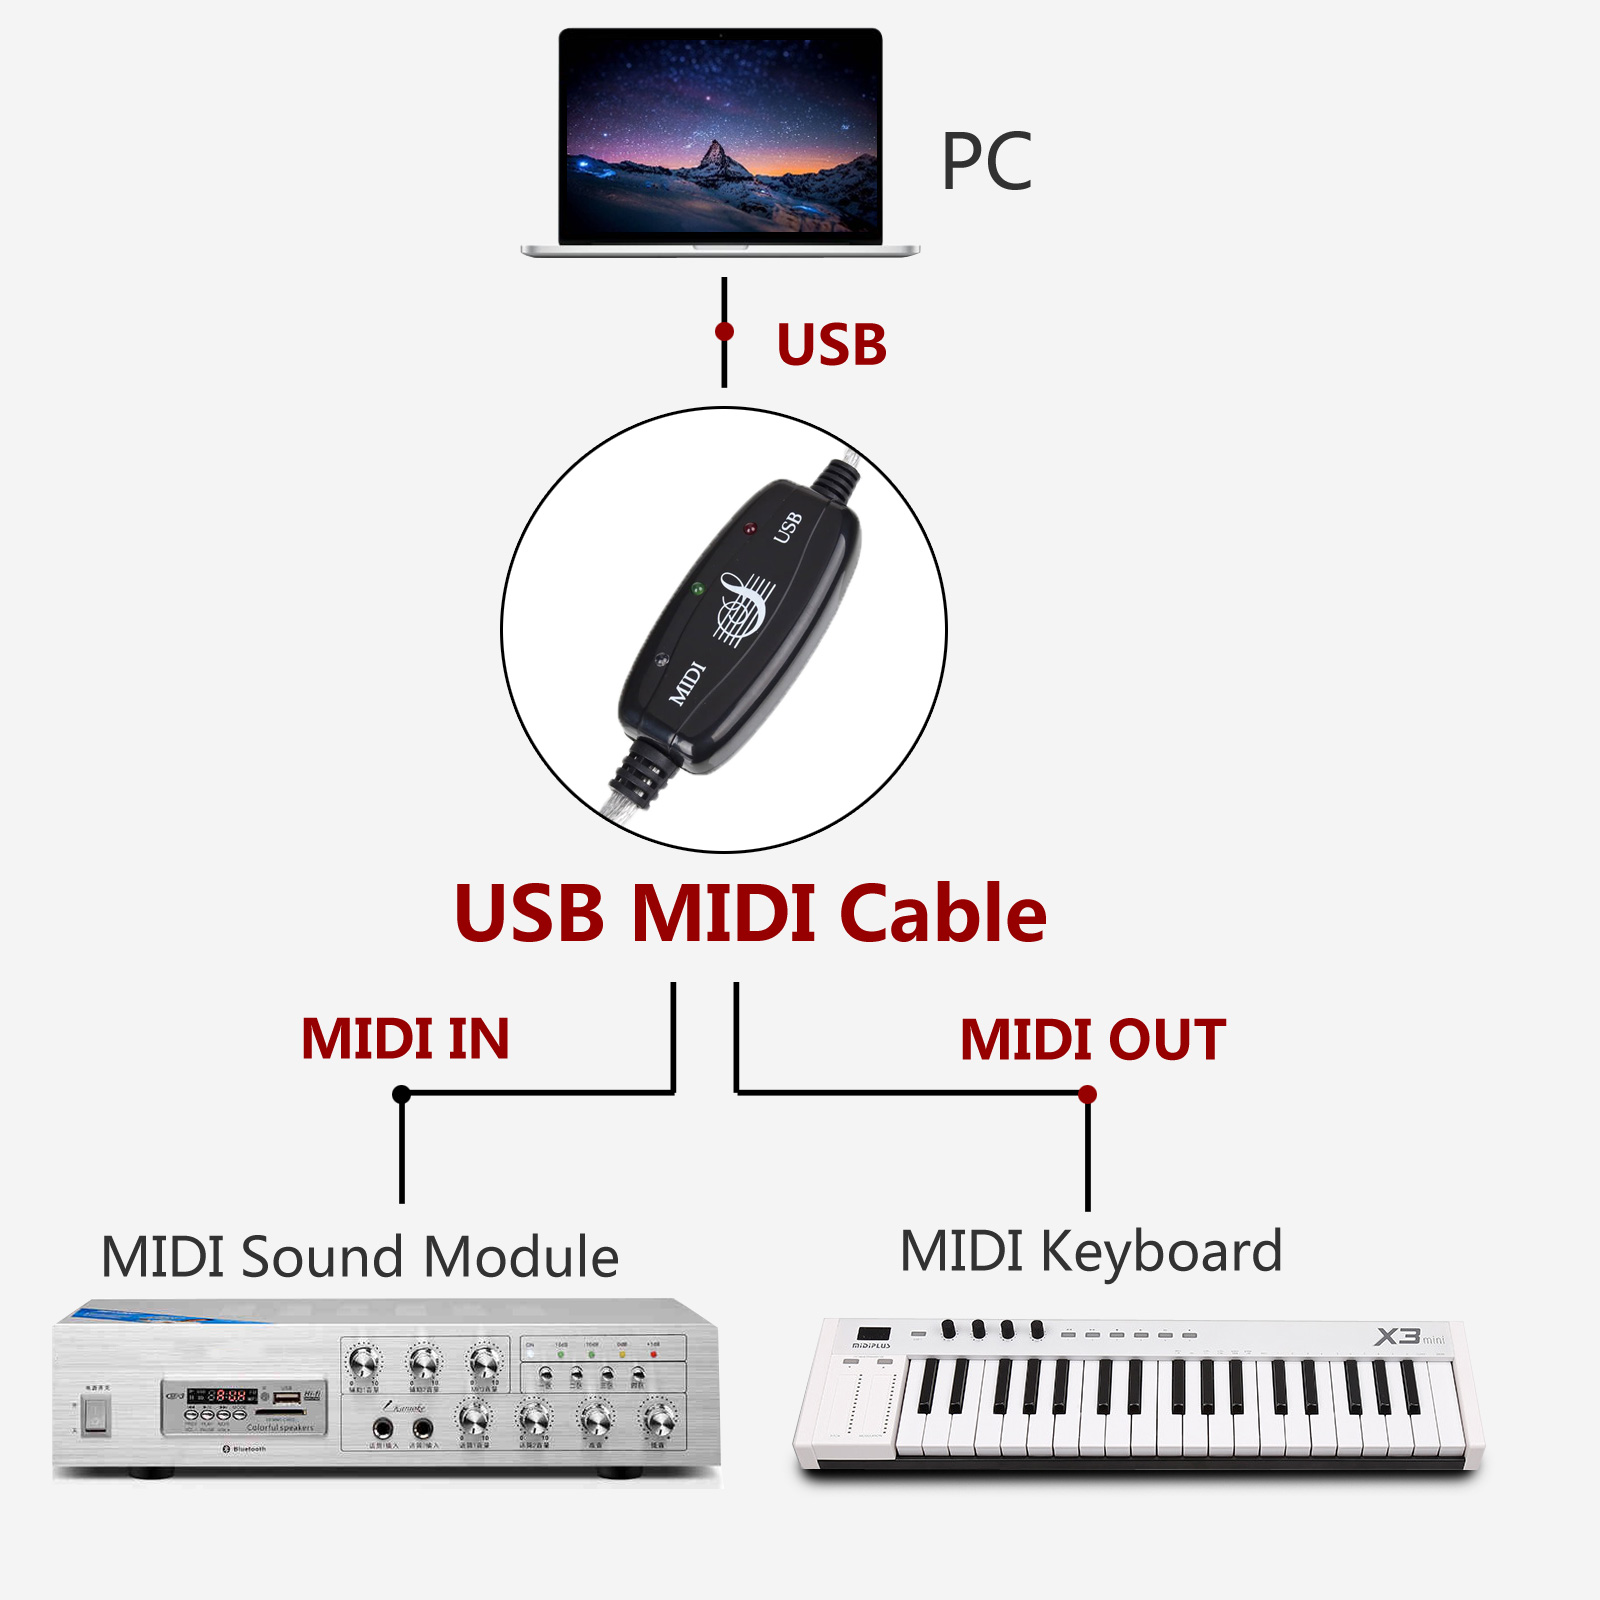 Usb Interface To Midi Converter Adapter Cable Music Keyboard Mac Kabel Turn Your Pc Into A Studio With This Built In Driver No Installation Is Required Just Plug And Play It Will Install Itself